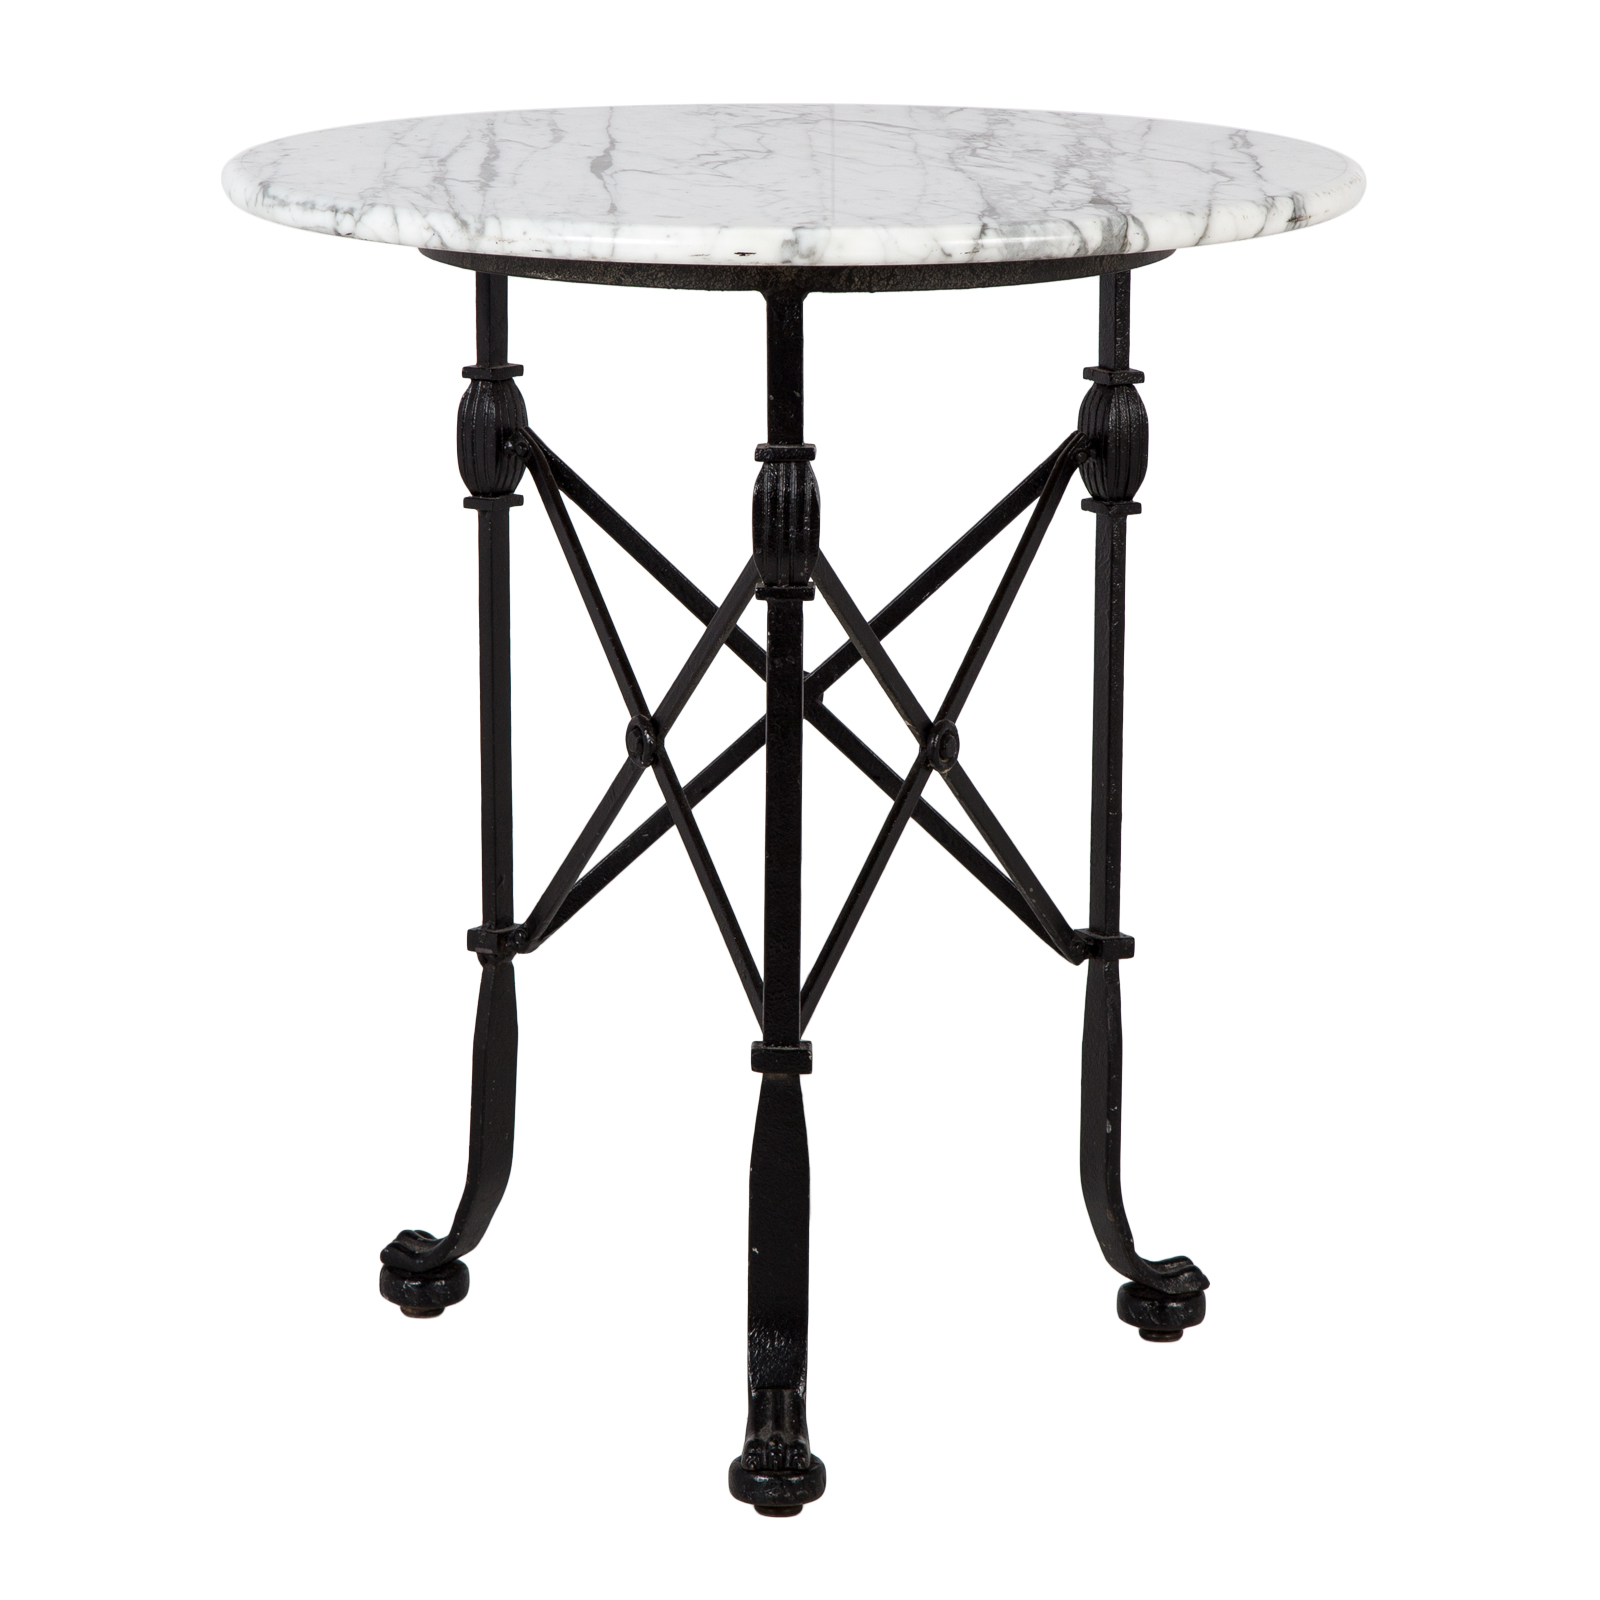 tall side size coffee unique accent tables black bar height table and chairs round mats ceramic drum dorm room supplies drop leaf dinette sets large concrete dining base placemats